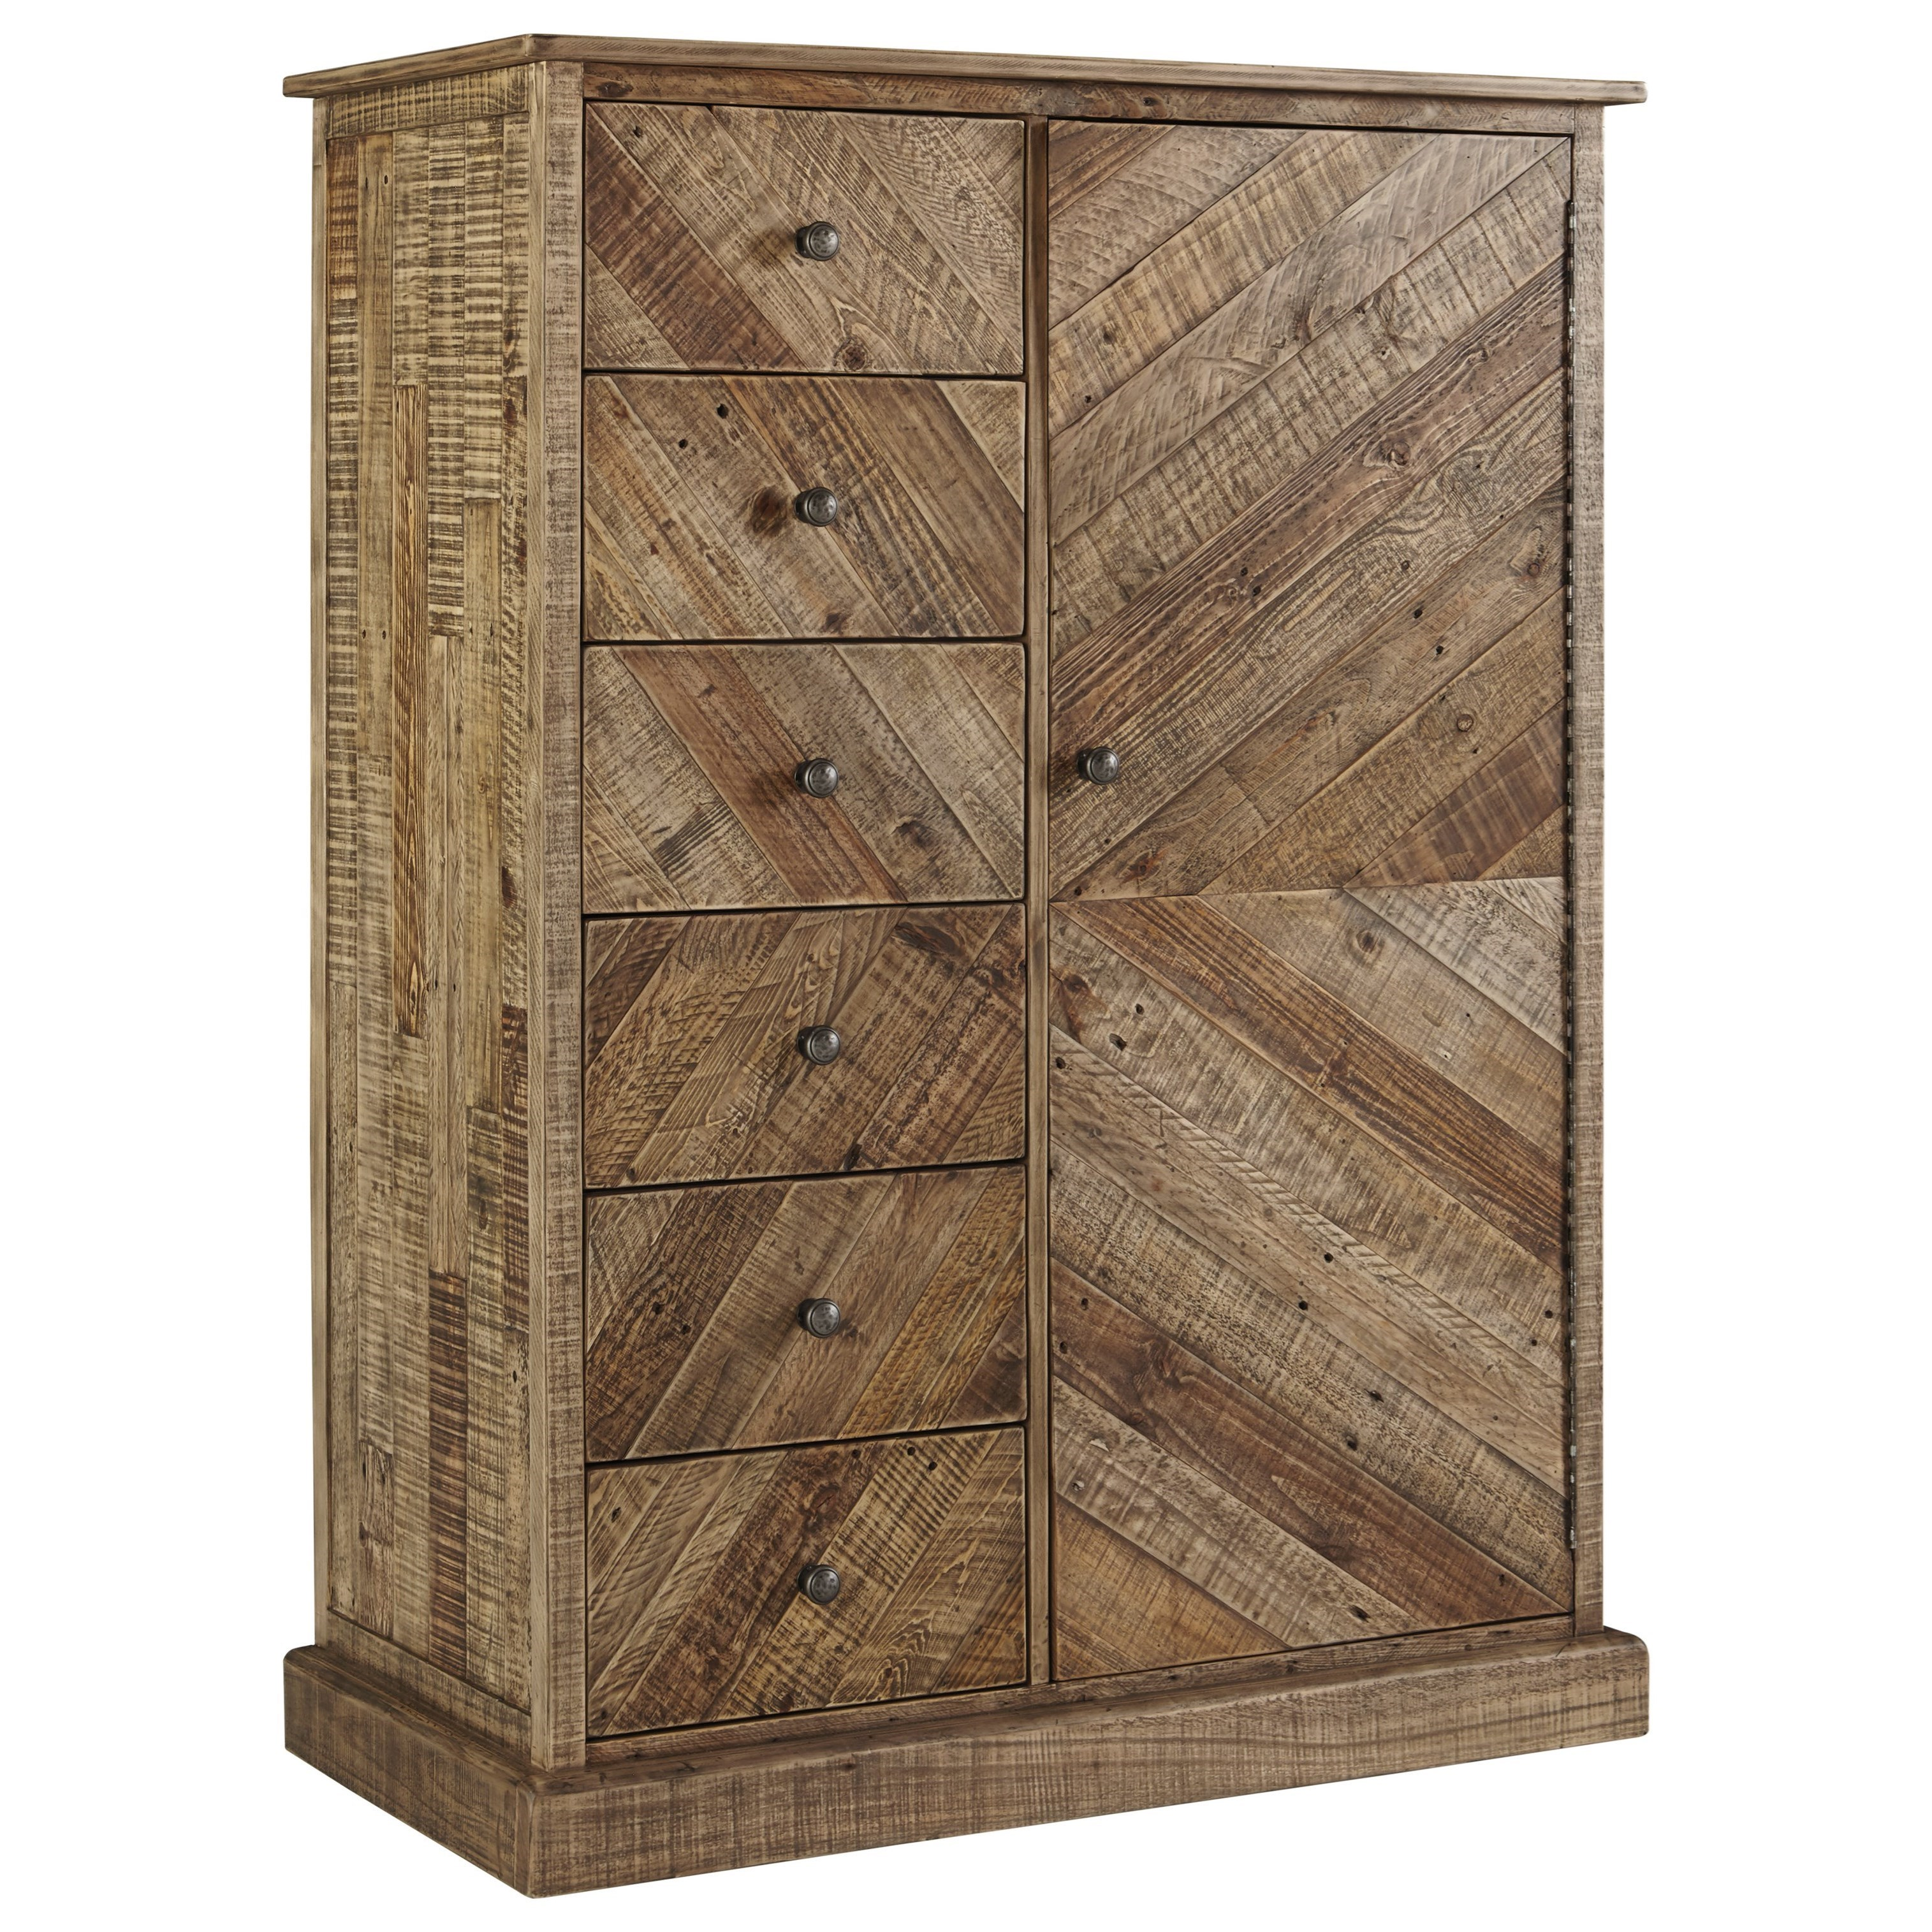 Signature Design by Ashley Grindleburg Rustic Door Chest  sc 1 st  Aladdin Home Store & Signature Design by Ashley Grindleburg Rustic Door Chest | Aladdin ...